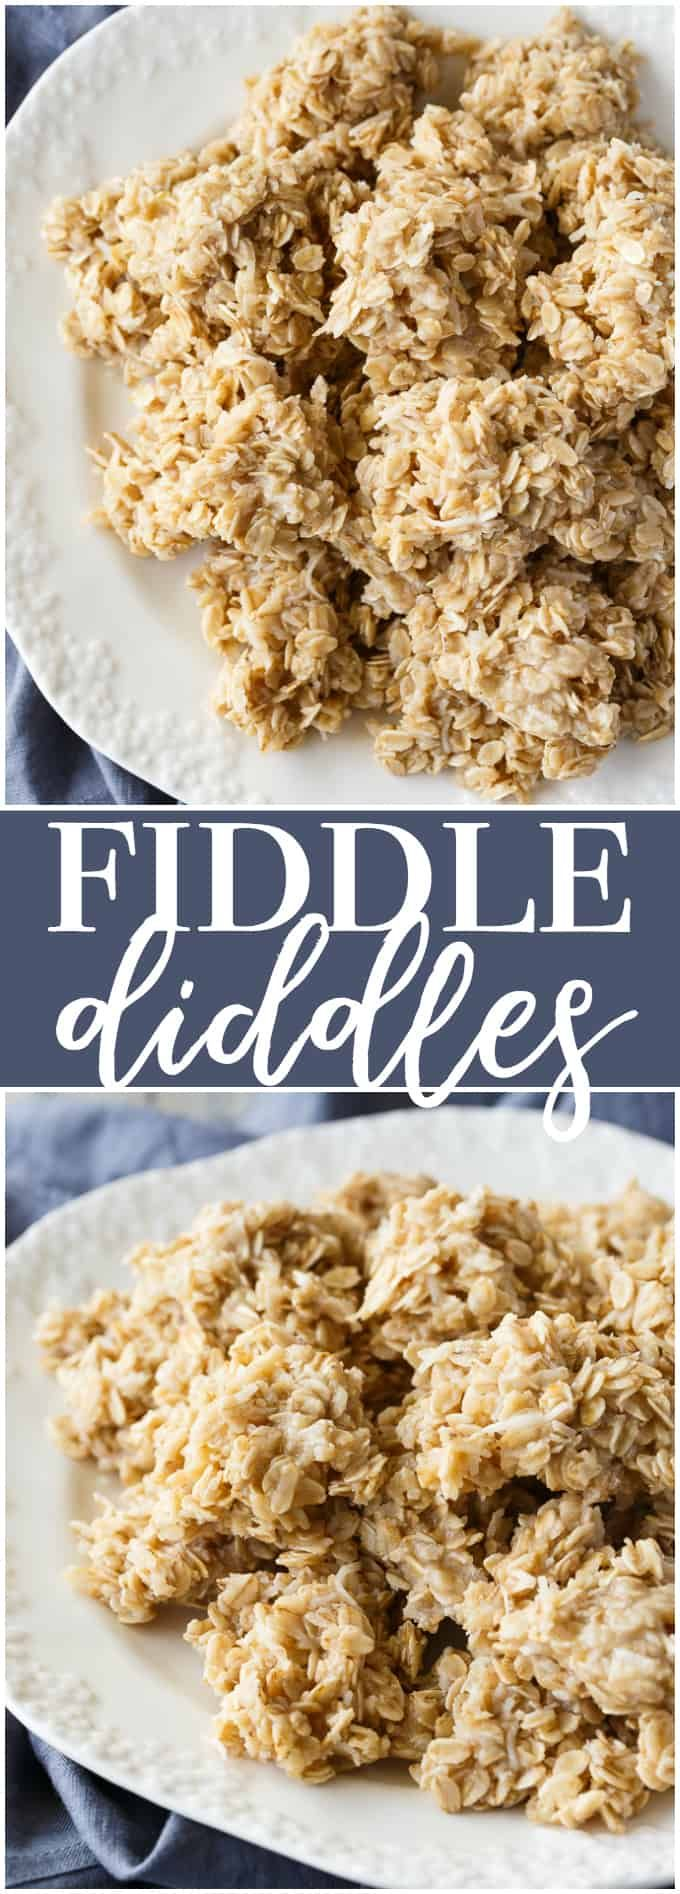 Fiddle Diddles - A no-bake cookie that is always a hit! Easy to make and deliciously sweet to eat.